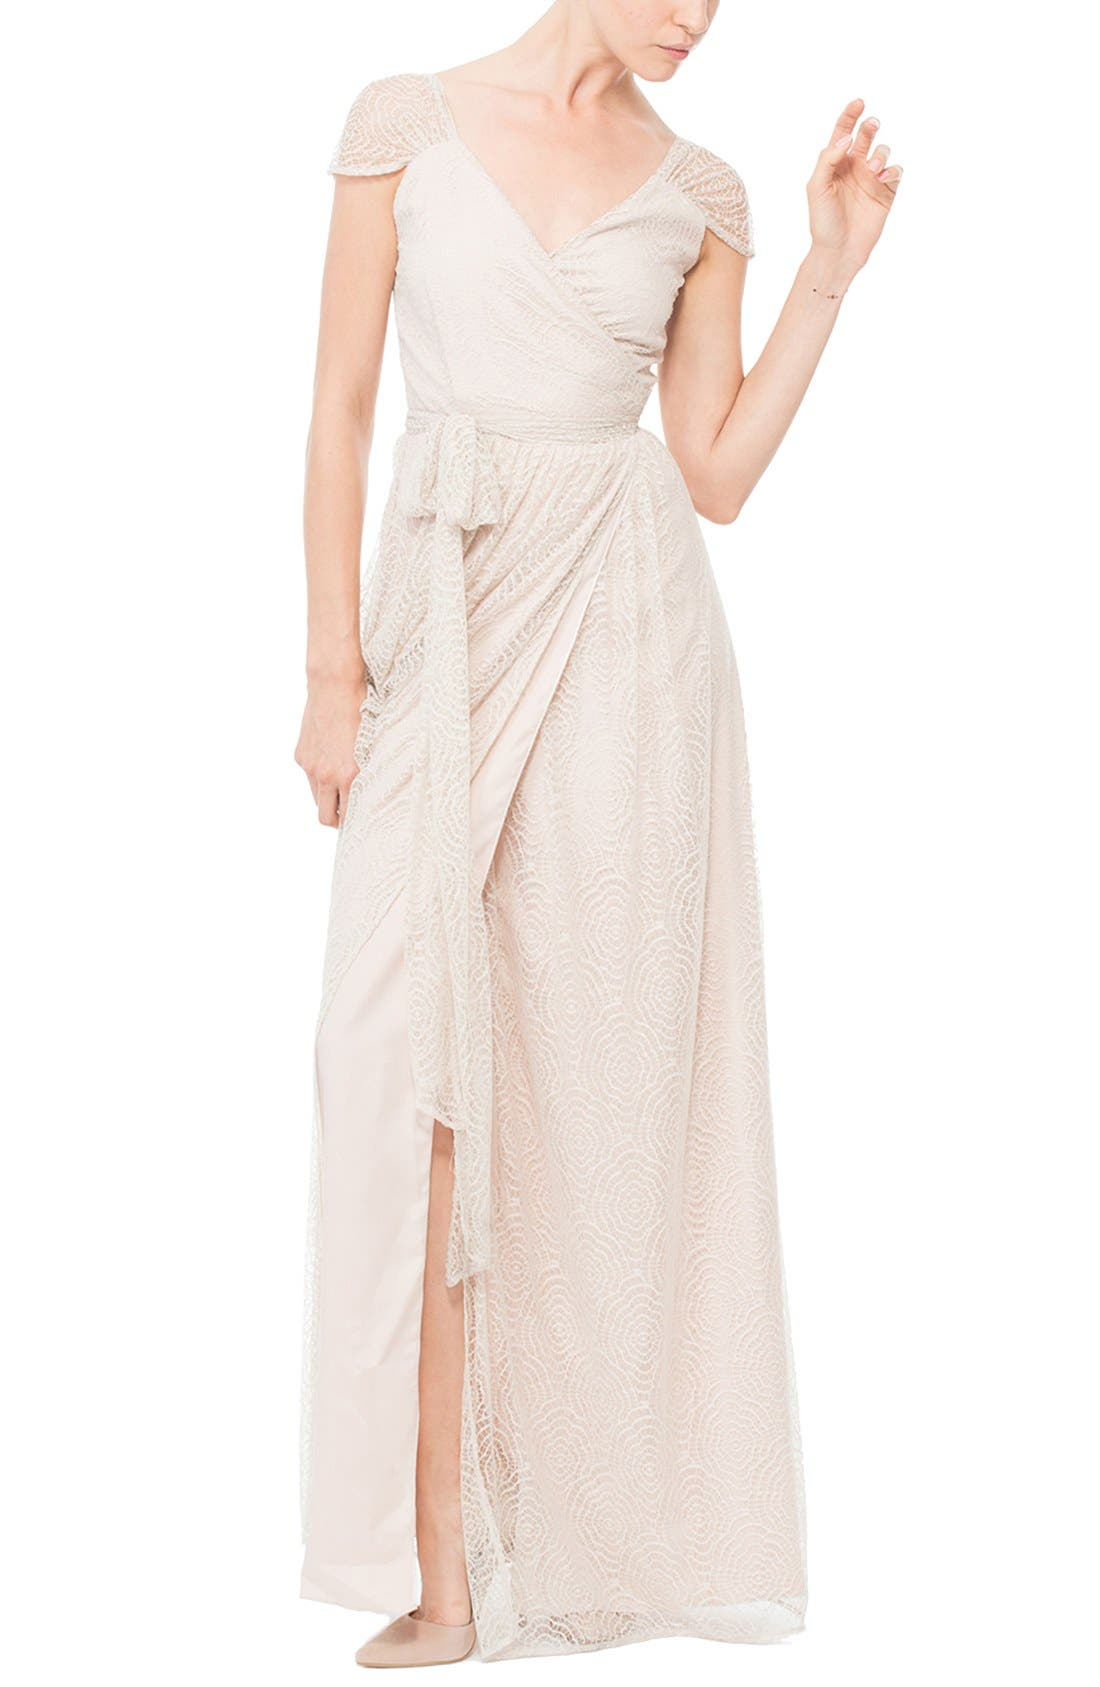 Ceremony by Joanna August 'Newbury' Gathered Sleeve Lace Wrap Gown